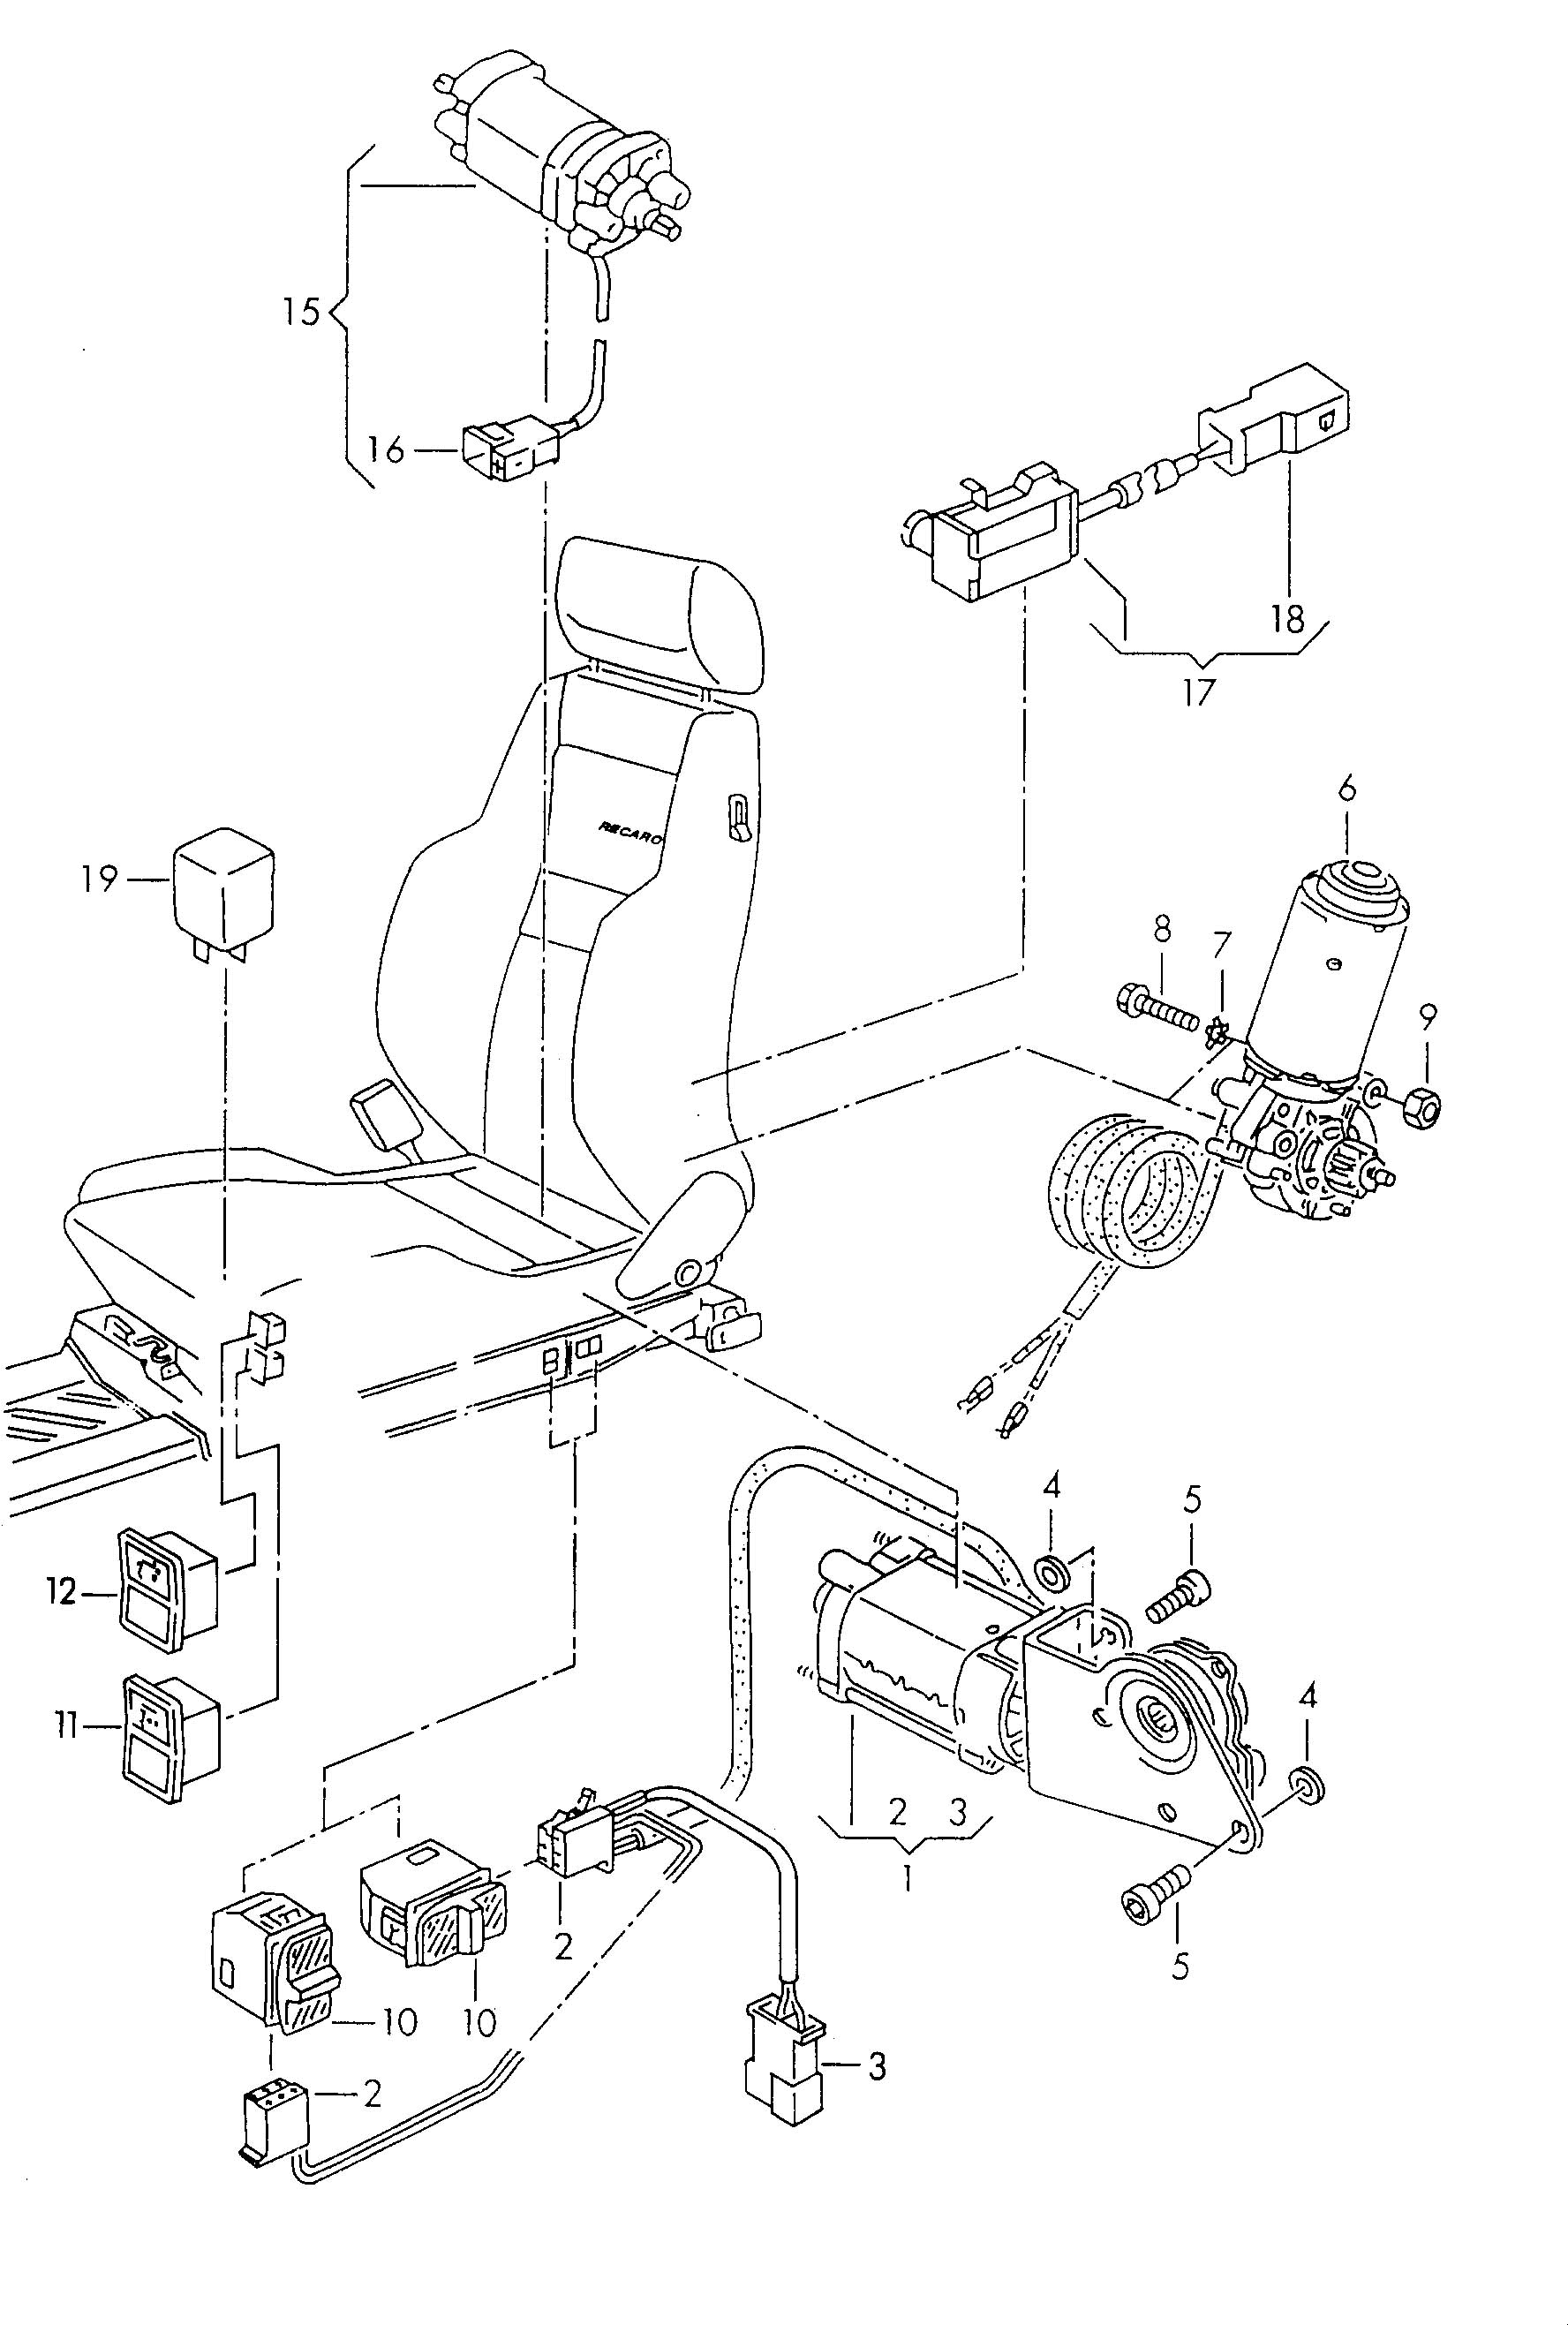 Volkswagen Corrado Electrical Parts For Seat And Backrest